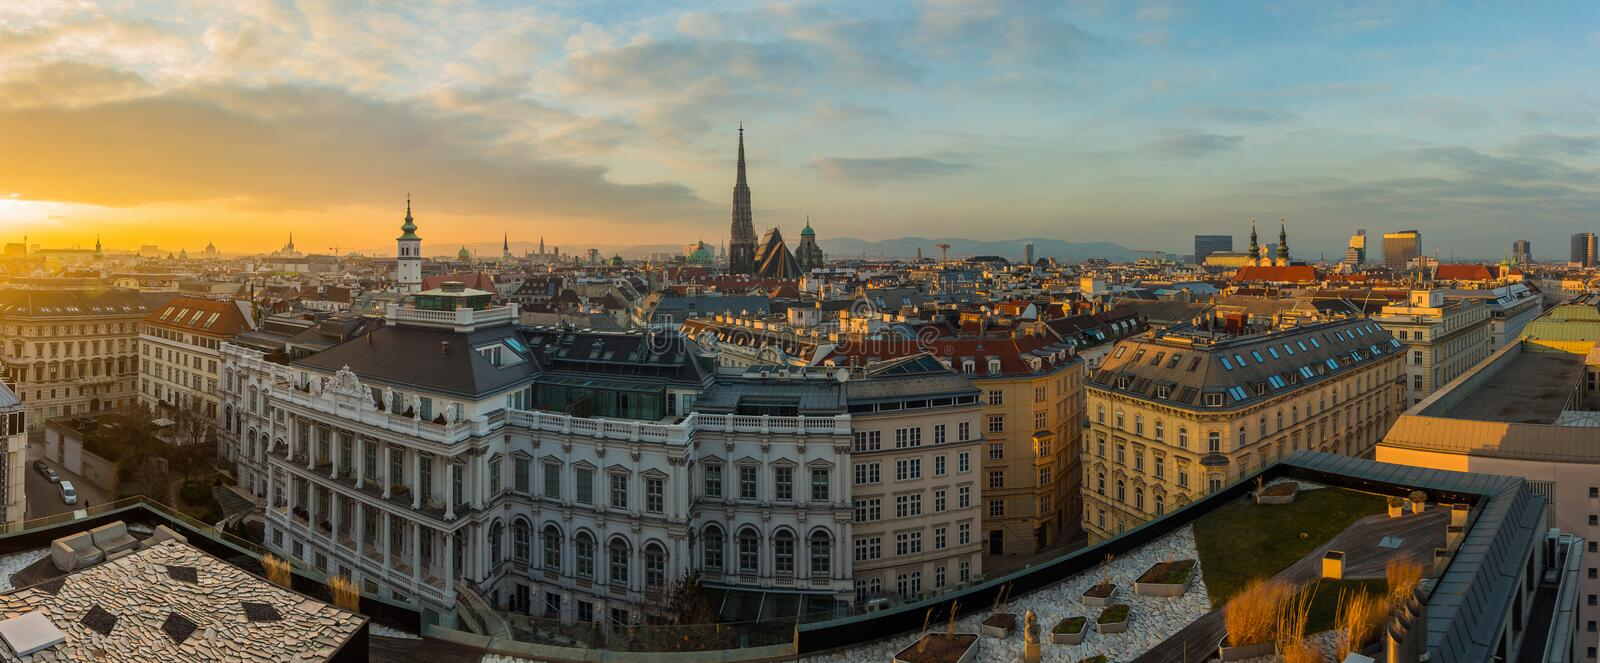 Vienna skyline at sunset stock images